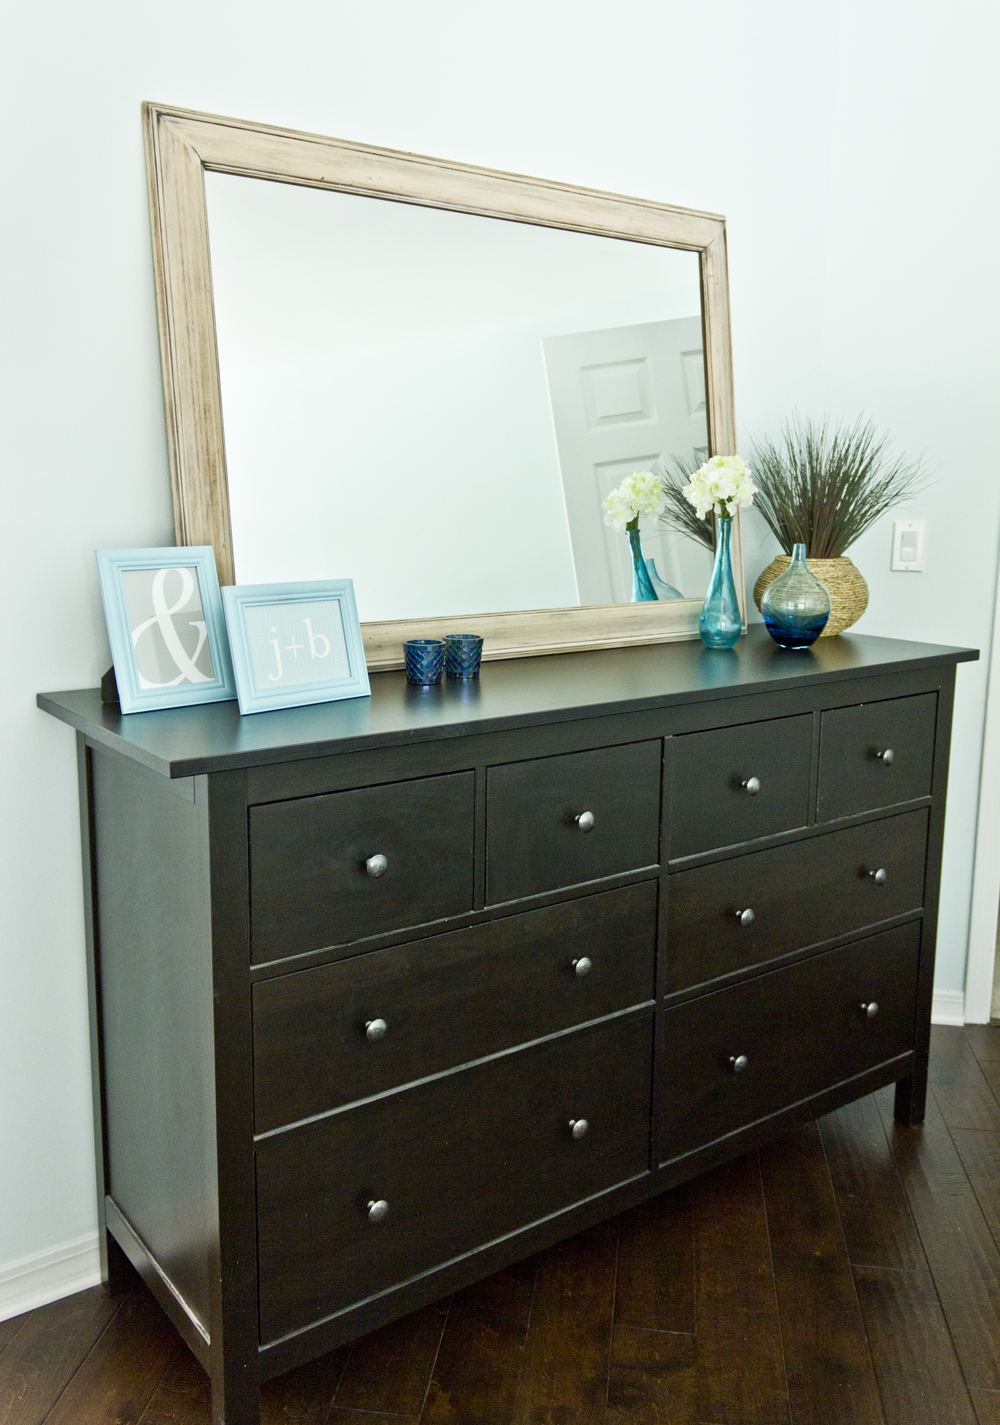 building a home remodeling ikea hemnes dresser hack a. Black Bedroom Furniture Sets. Home Design Ideas